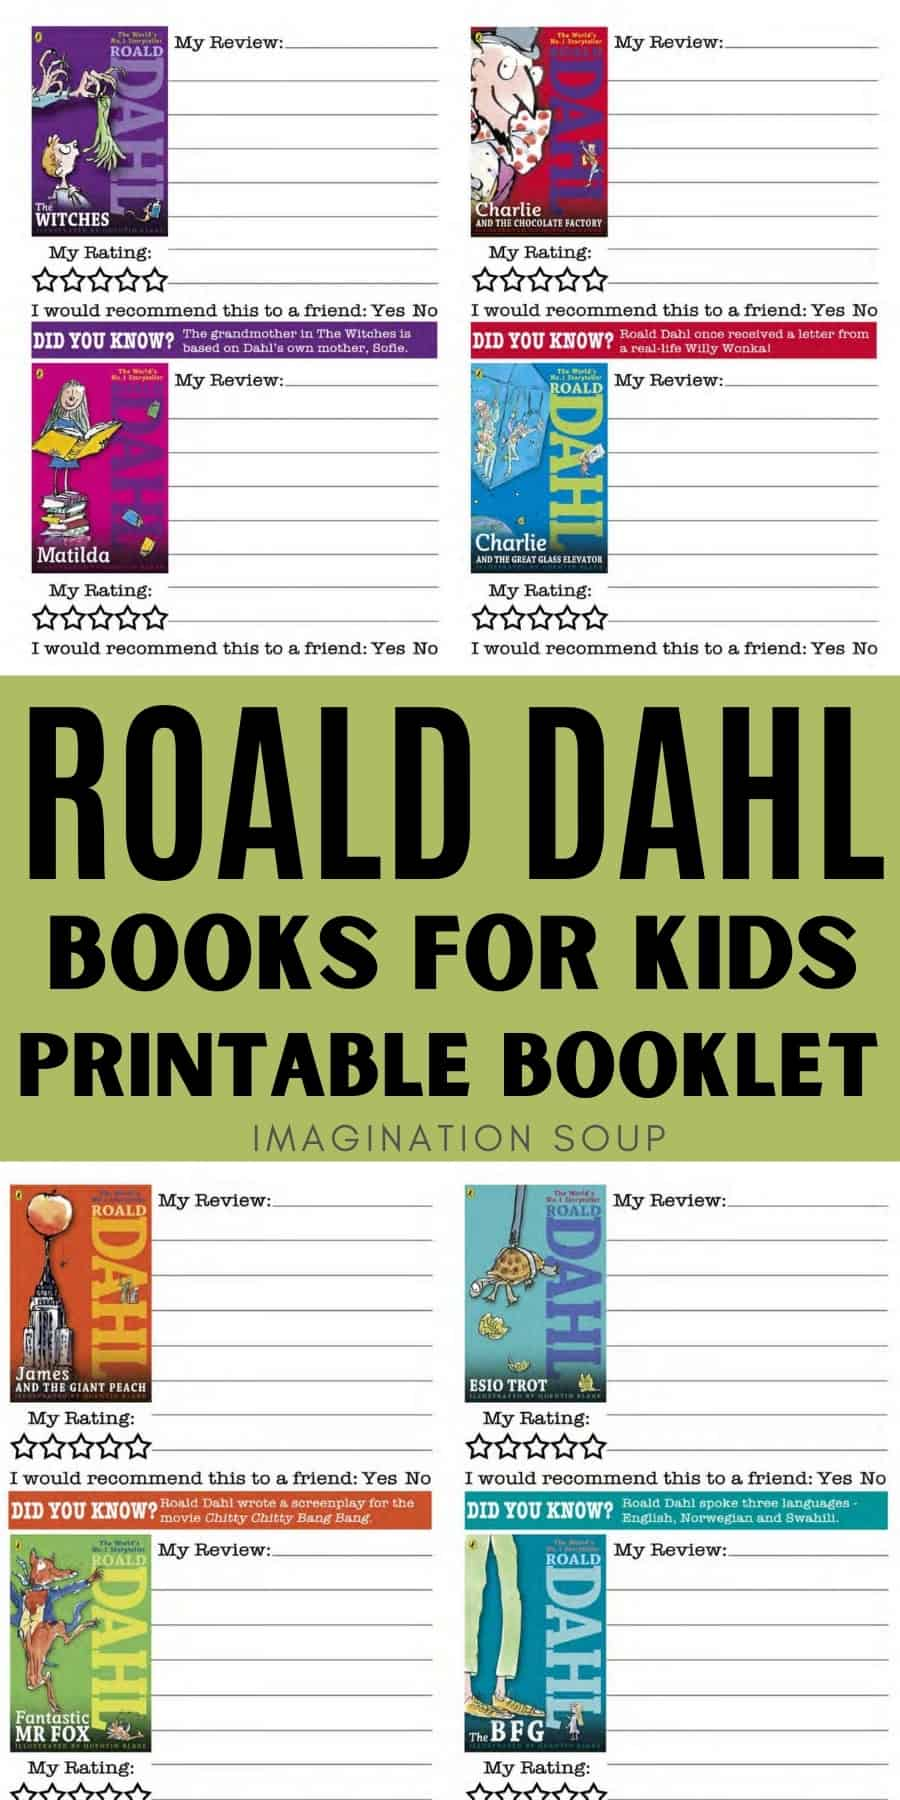 Roald Dahl books for kids plus a free printable booklet